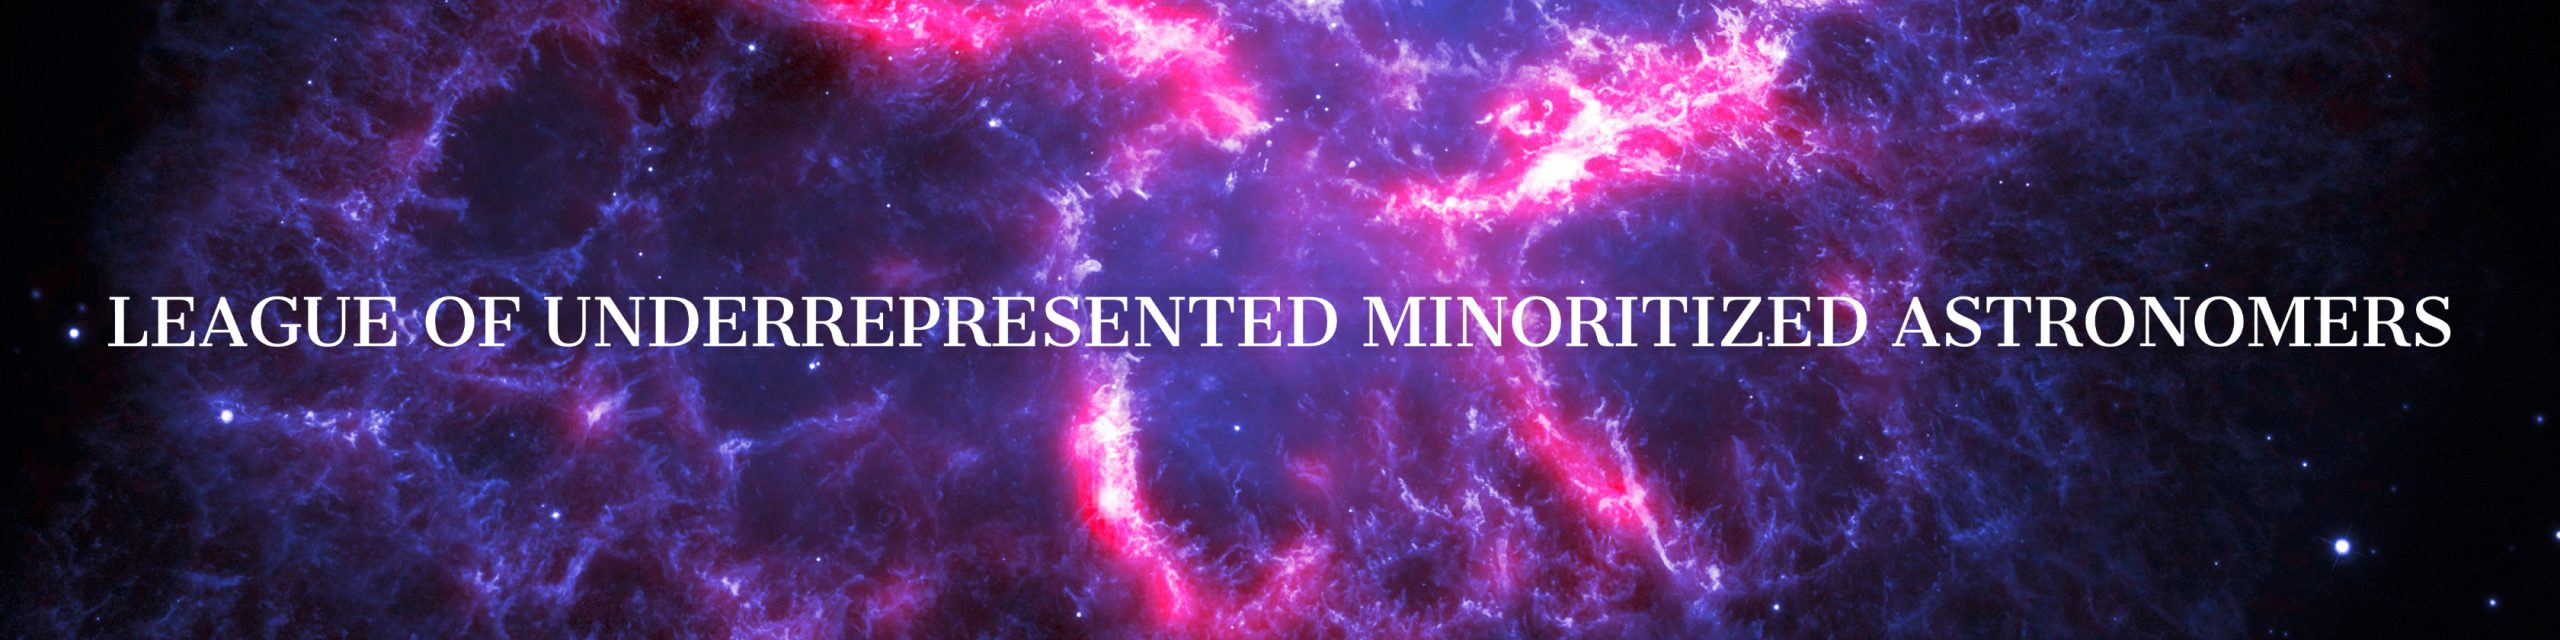 "Banner that says ""League of Underrepresented Minoritized Astronomers"""